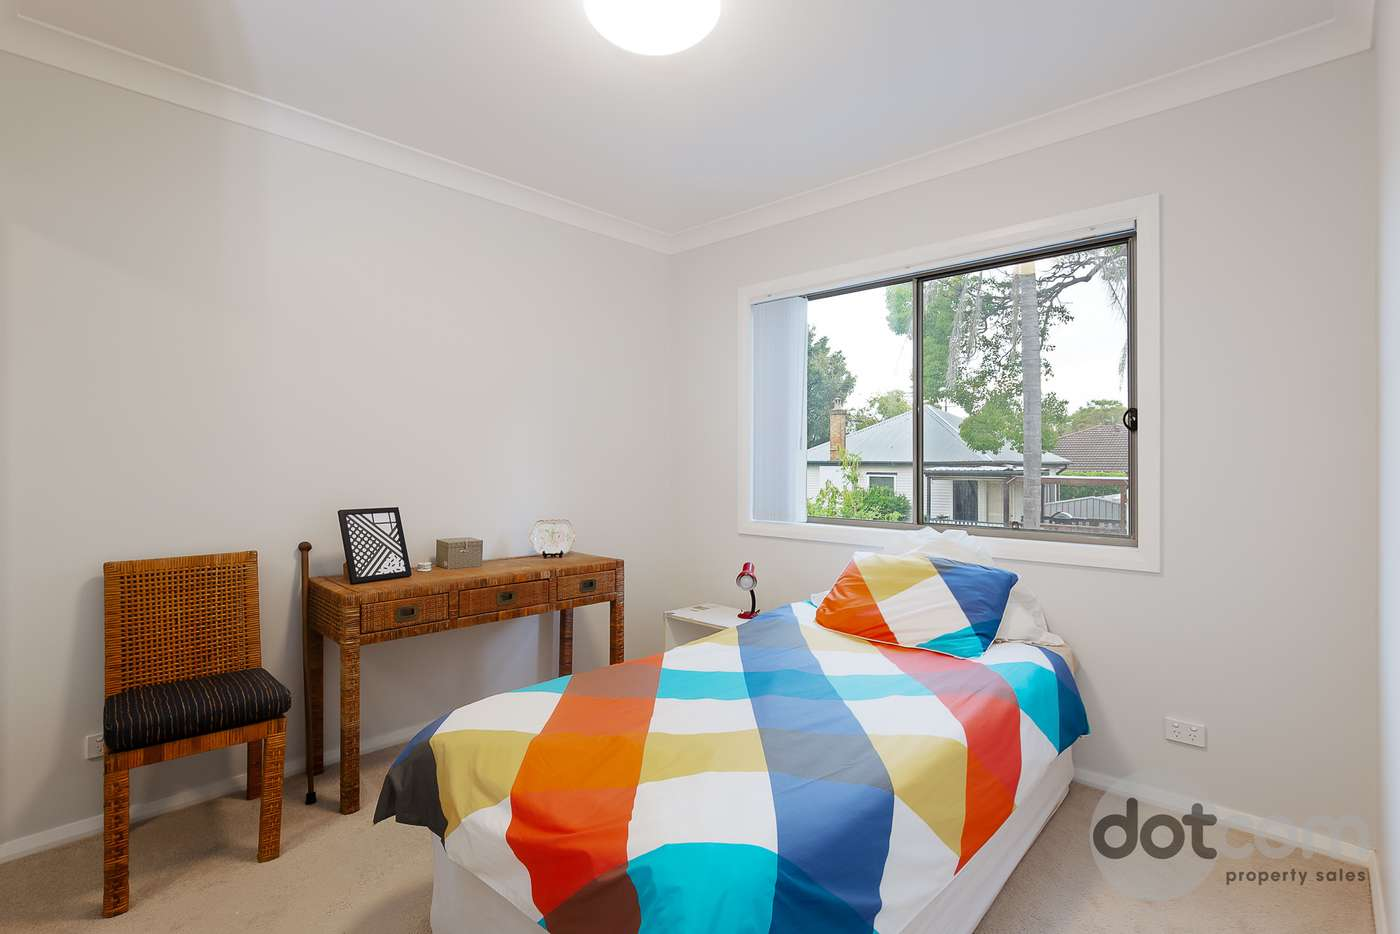 Sixth view of Homely apartment listing, 3/3 Kenibea Avenue, Kahibah NSW 2290